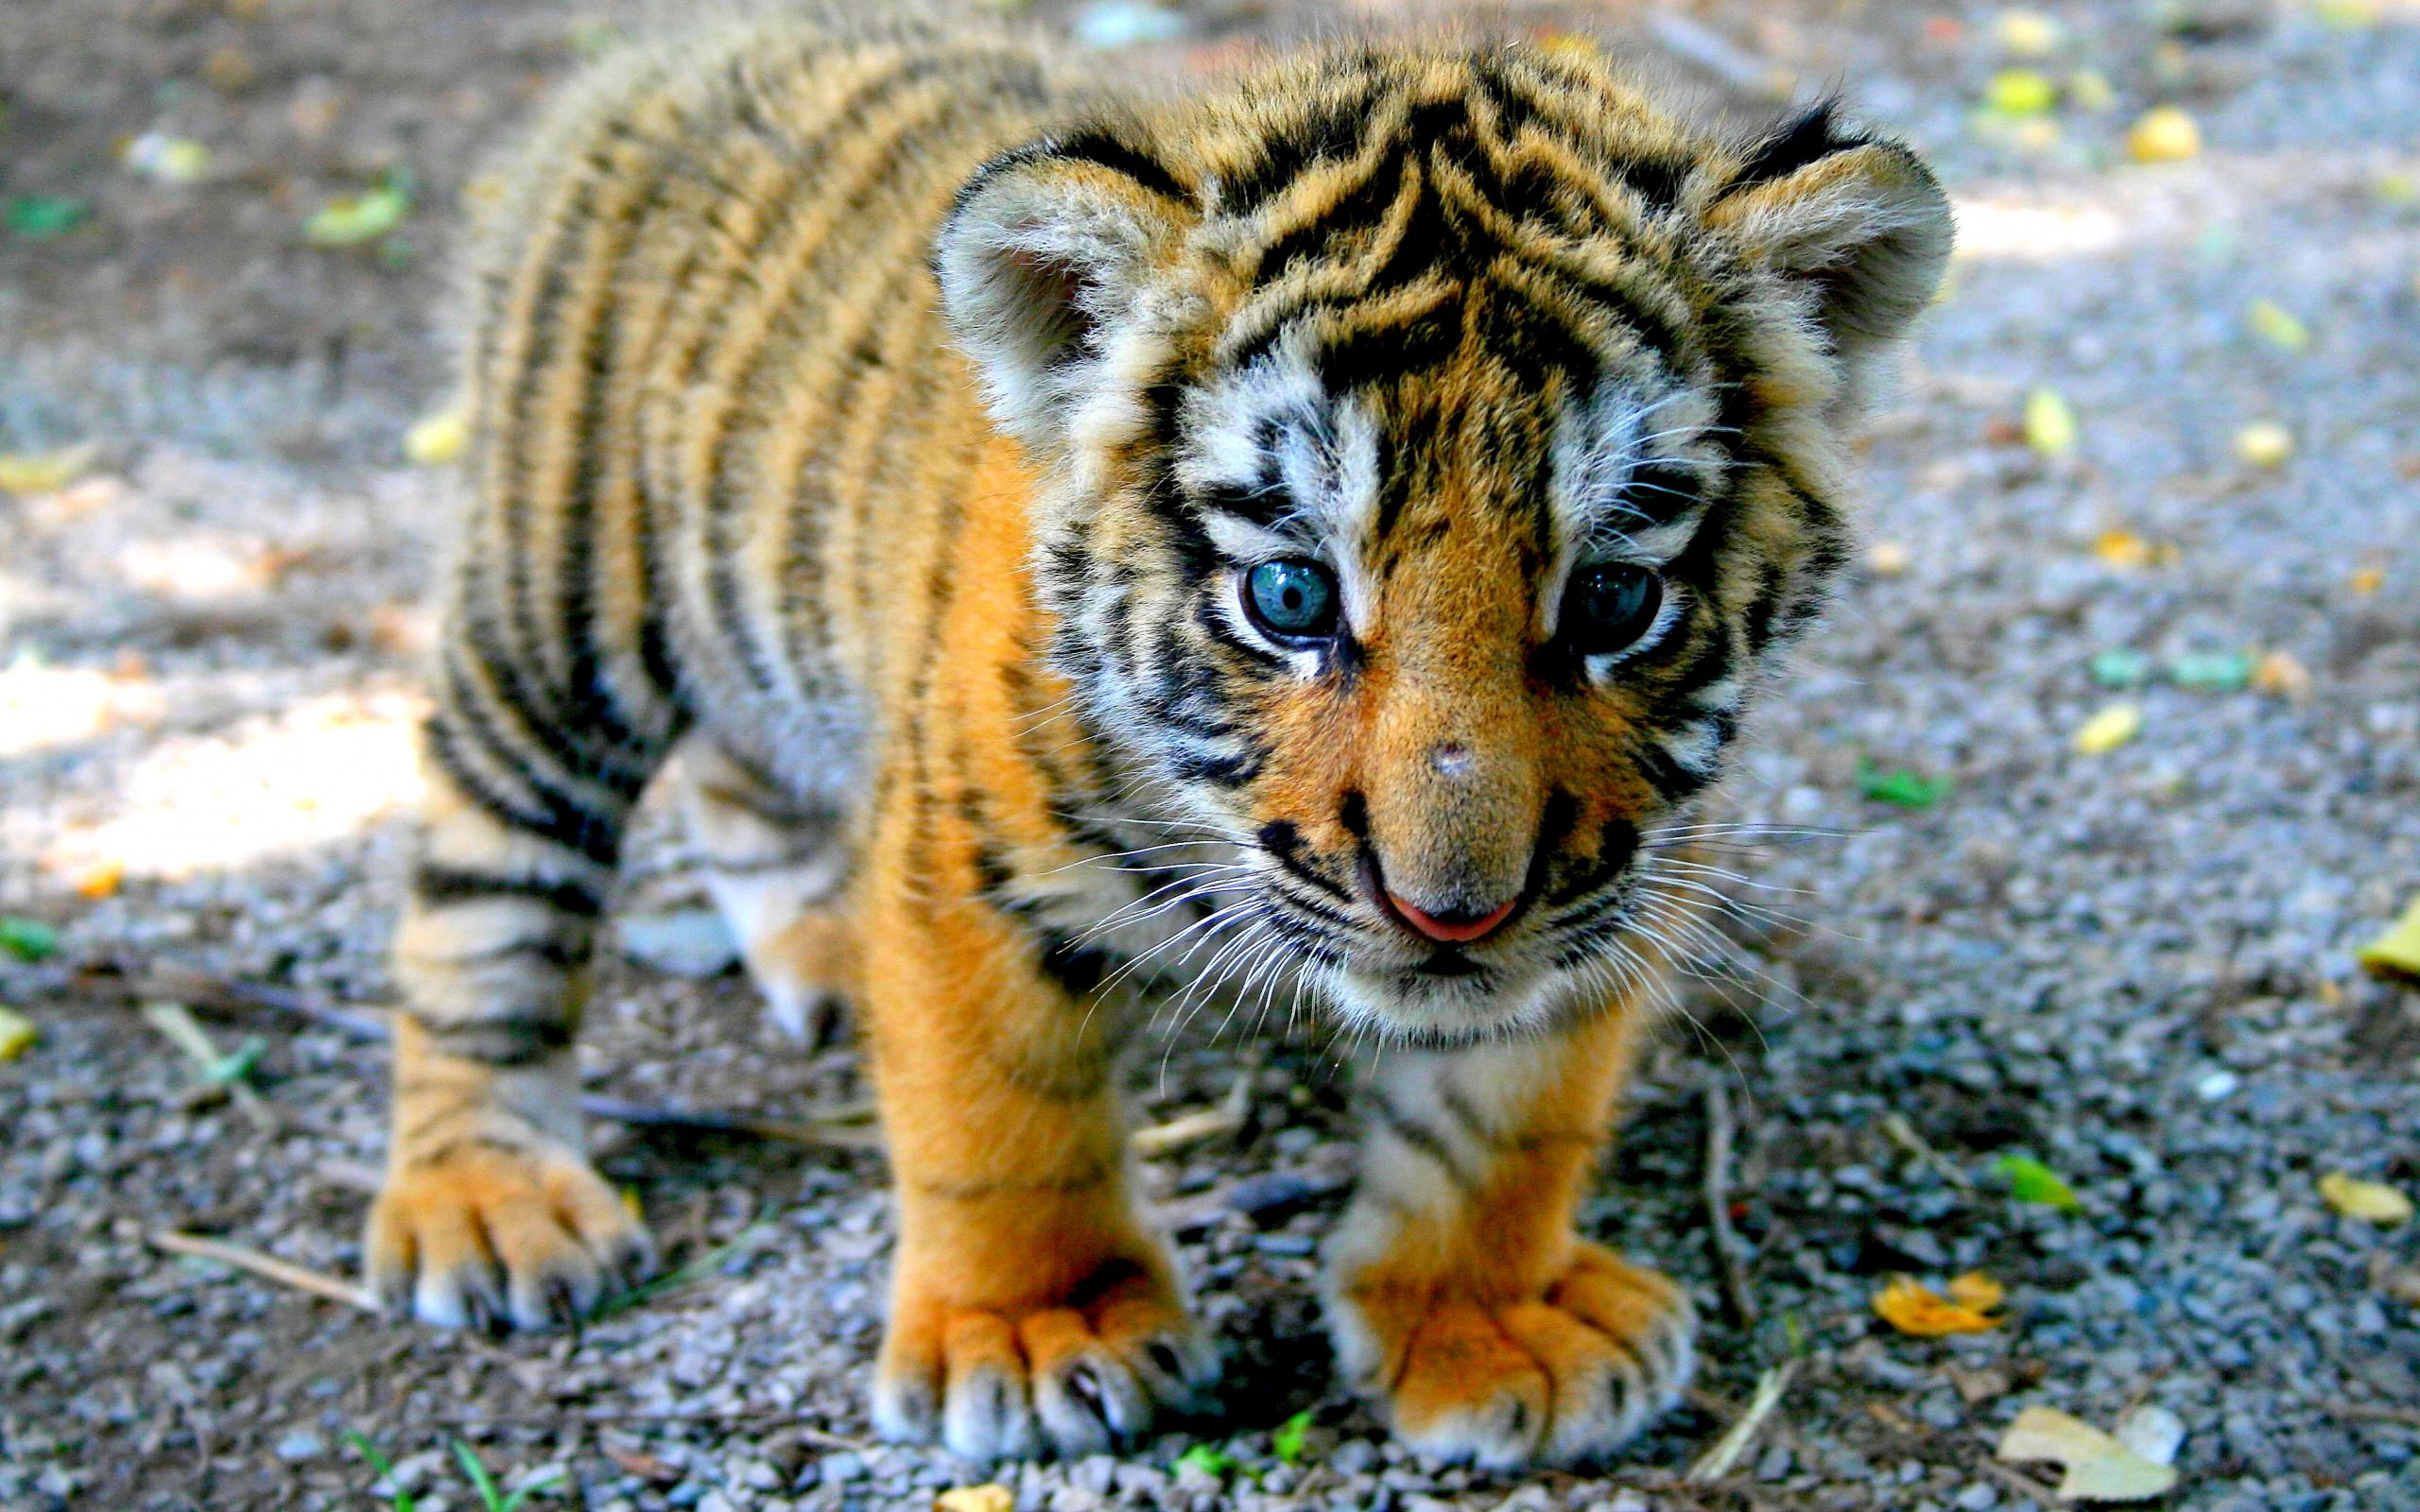 baby tiger wallpaper hd desktop 10 hd wallpapers | chainimage | 3d